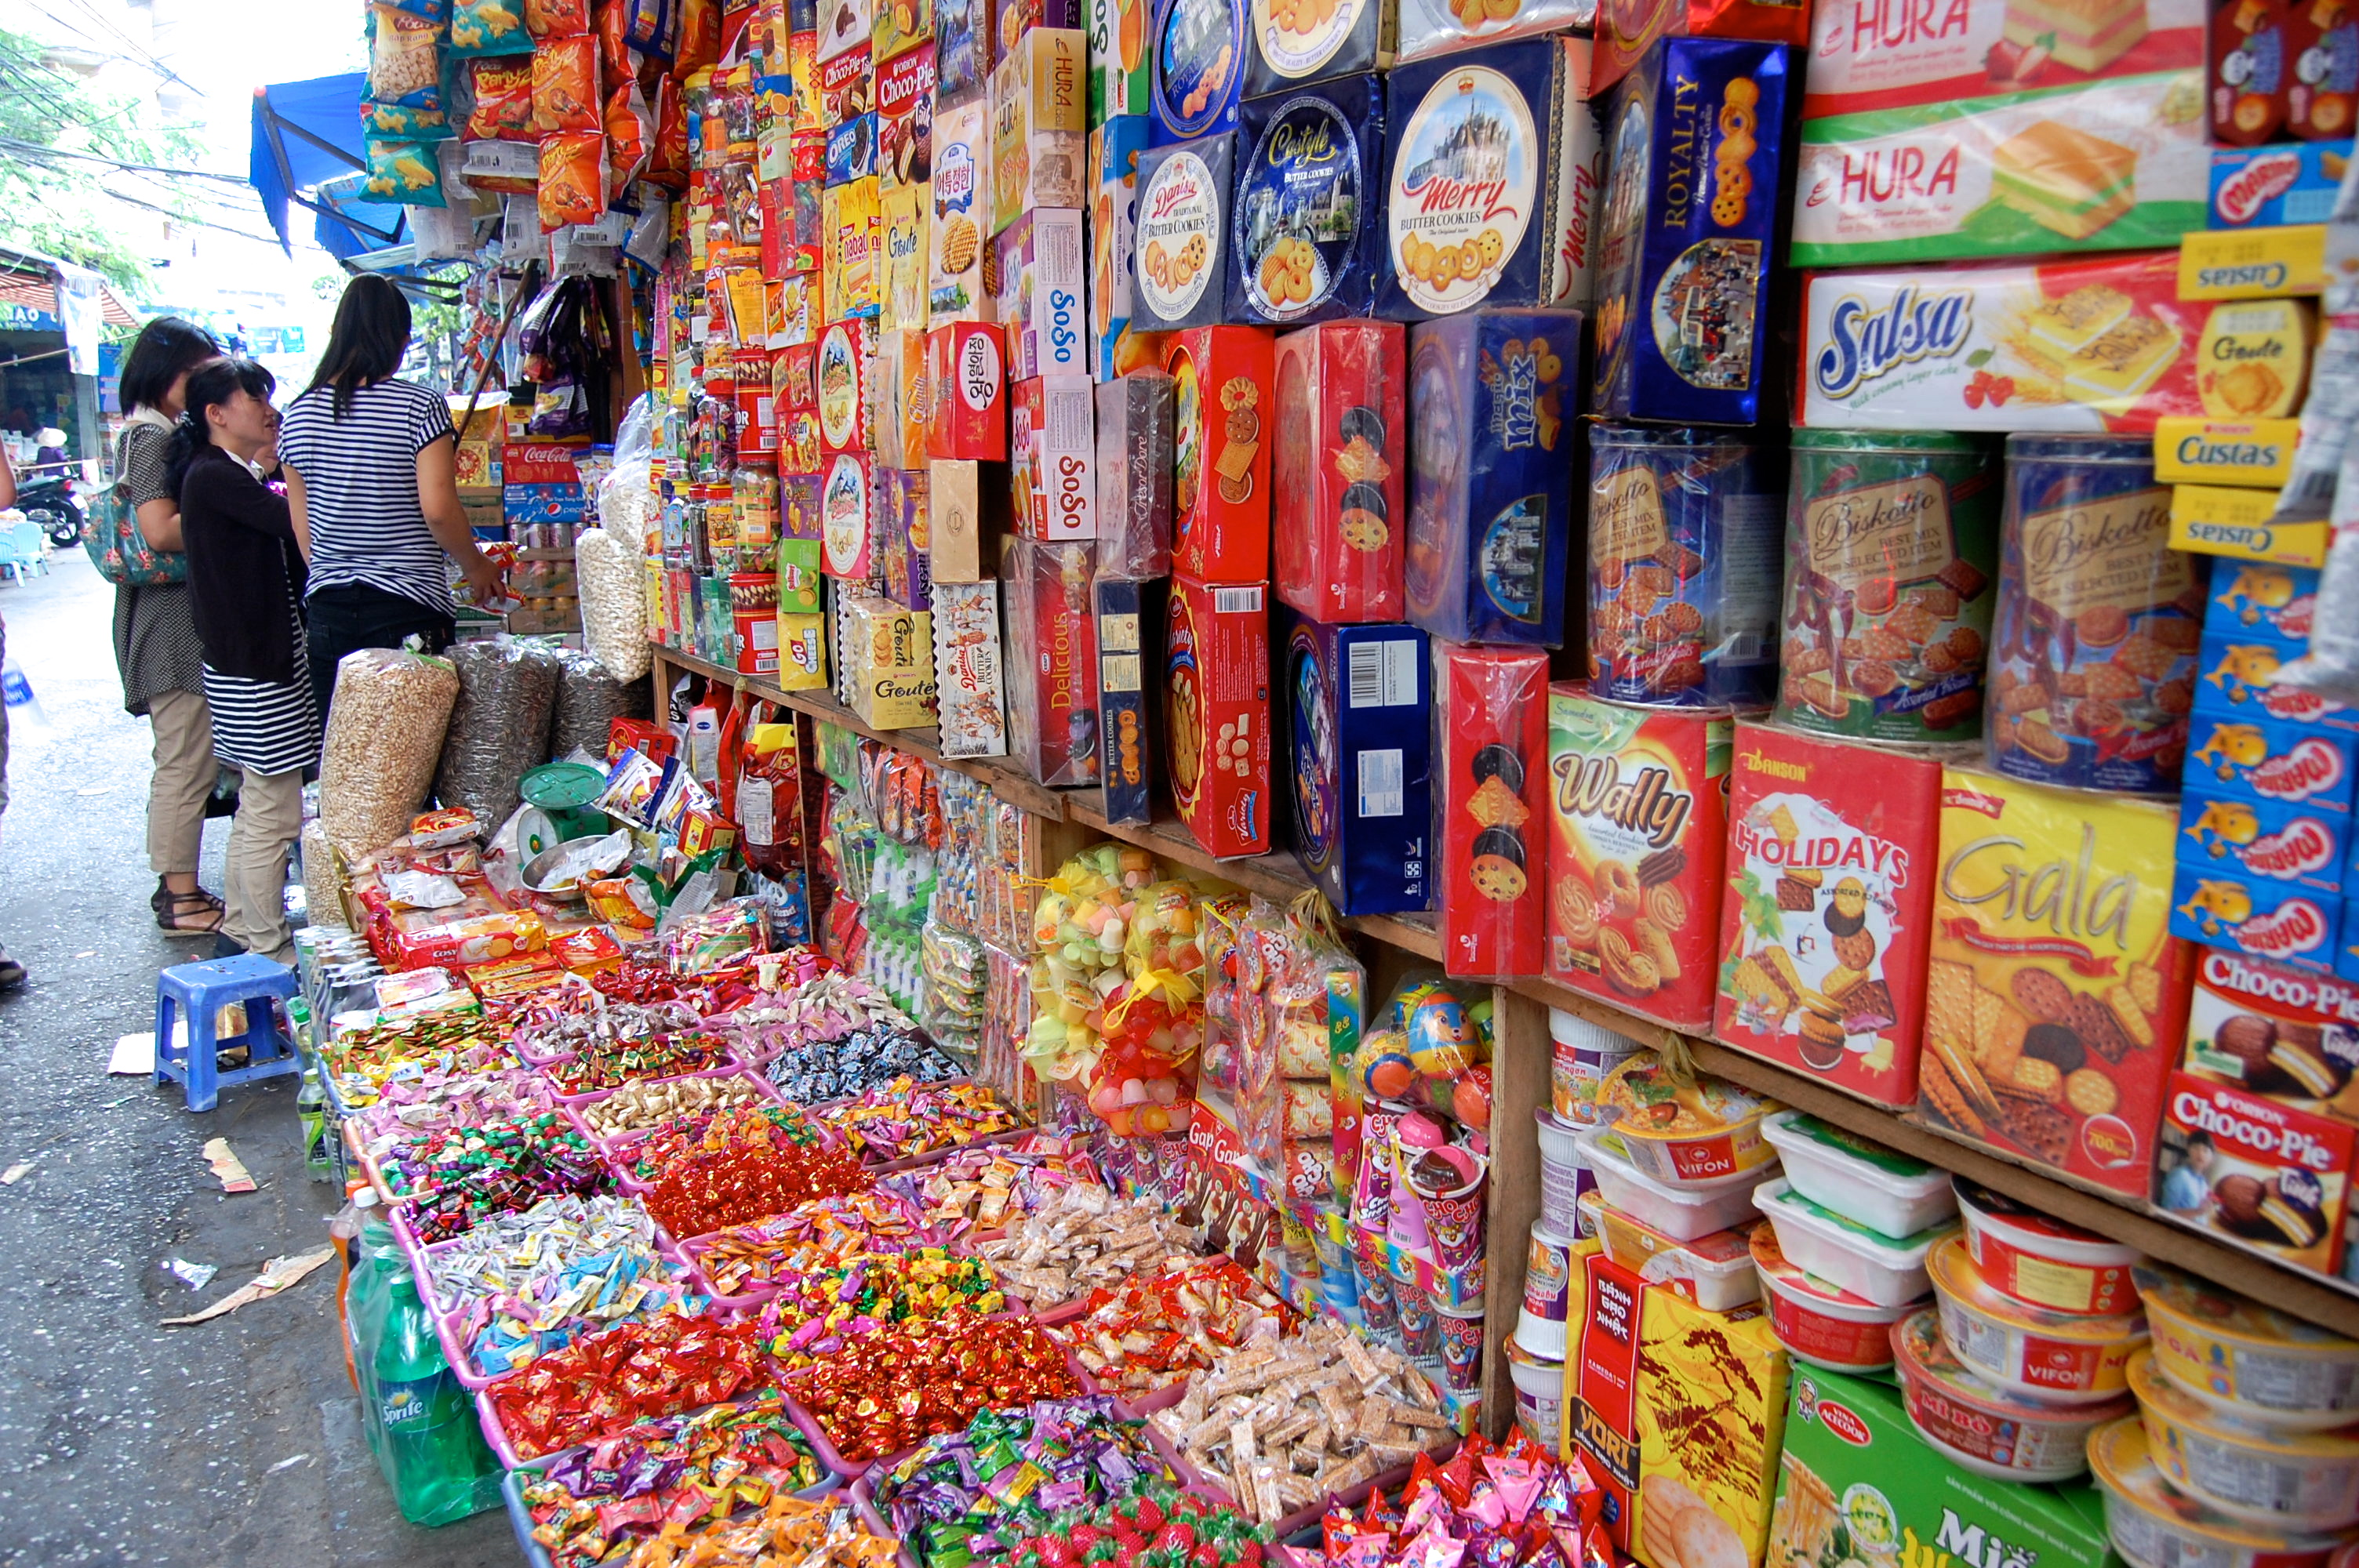 Street Stall with Processed Foods in Hanoi, Vietnam